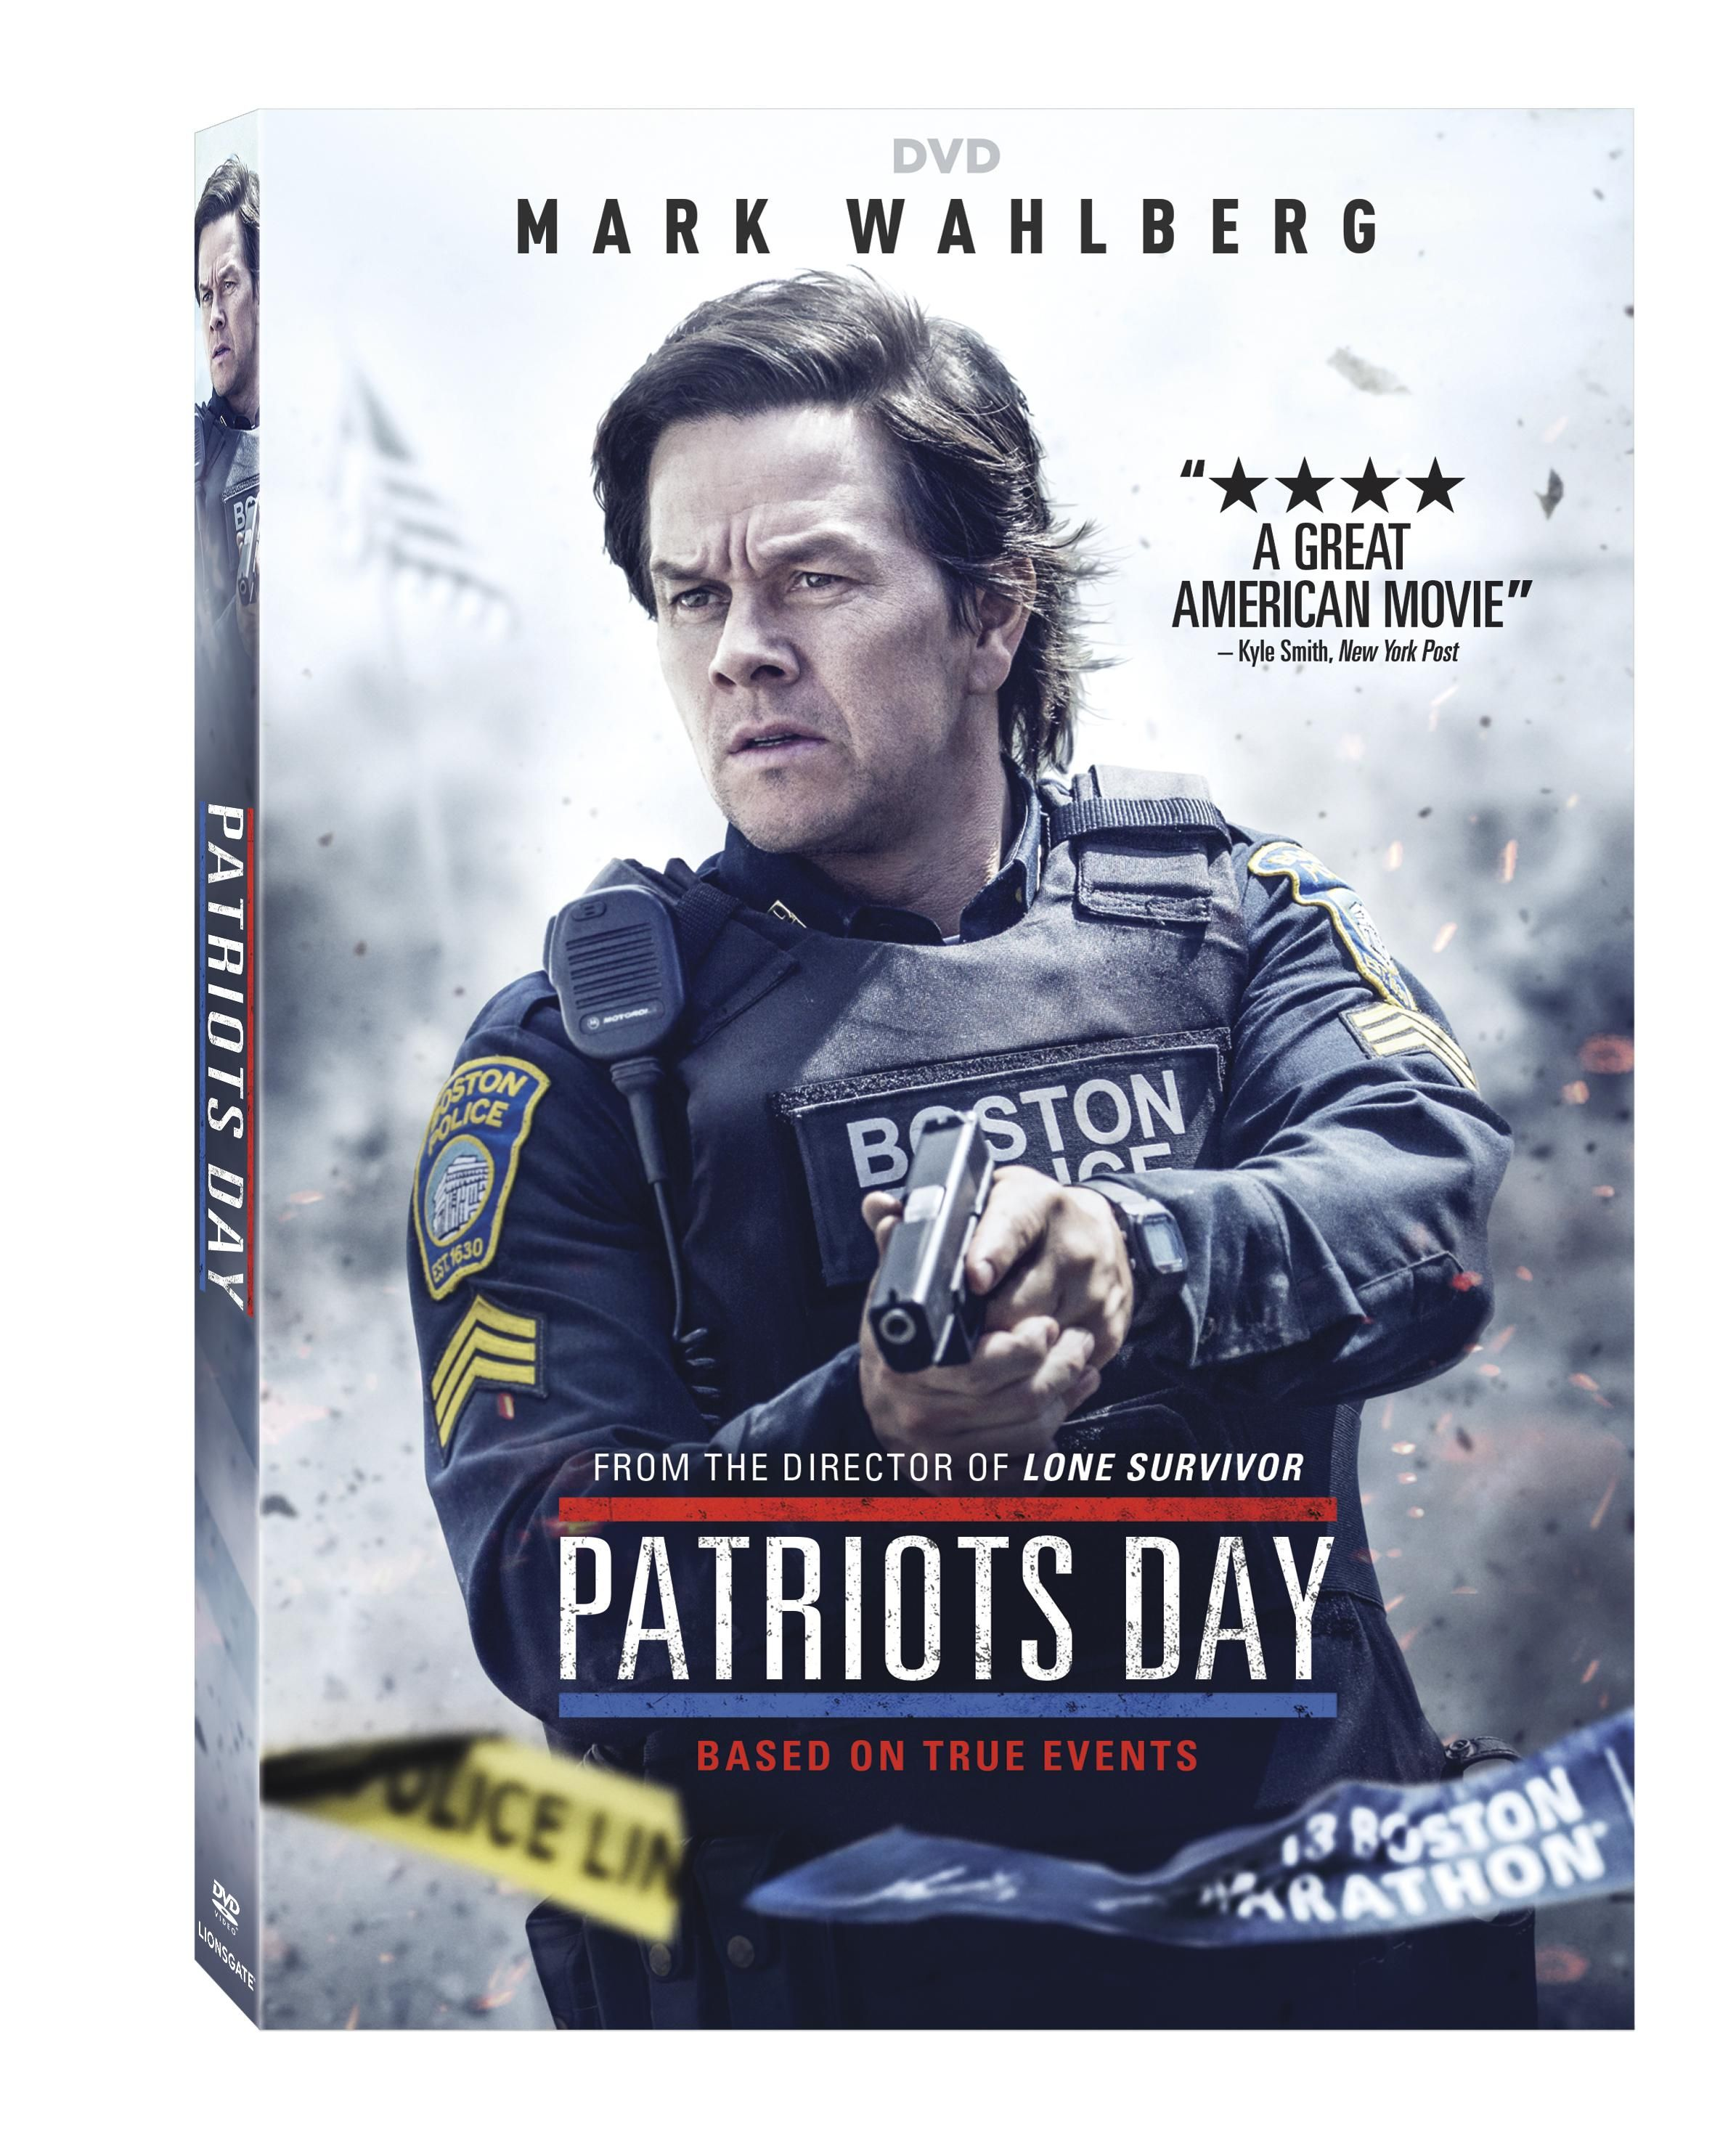 New On Dvd And Blu Ray March 28 2017 Mark Wahlberg Patriots Patriots Day